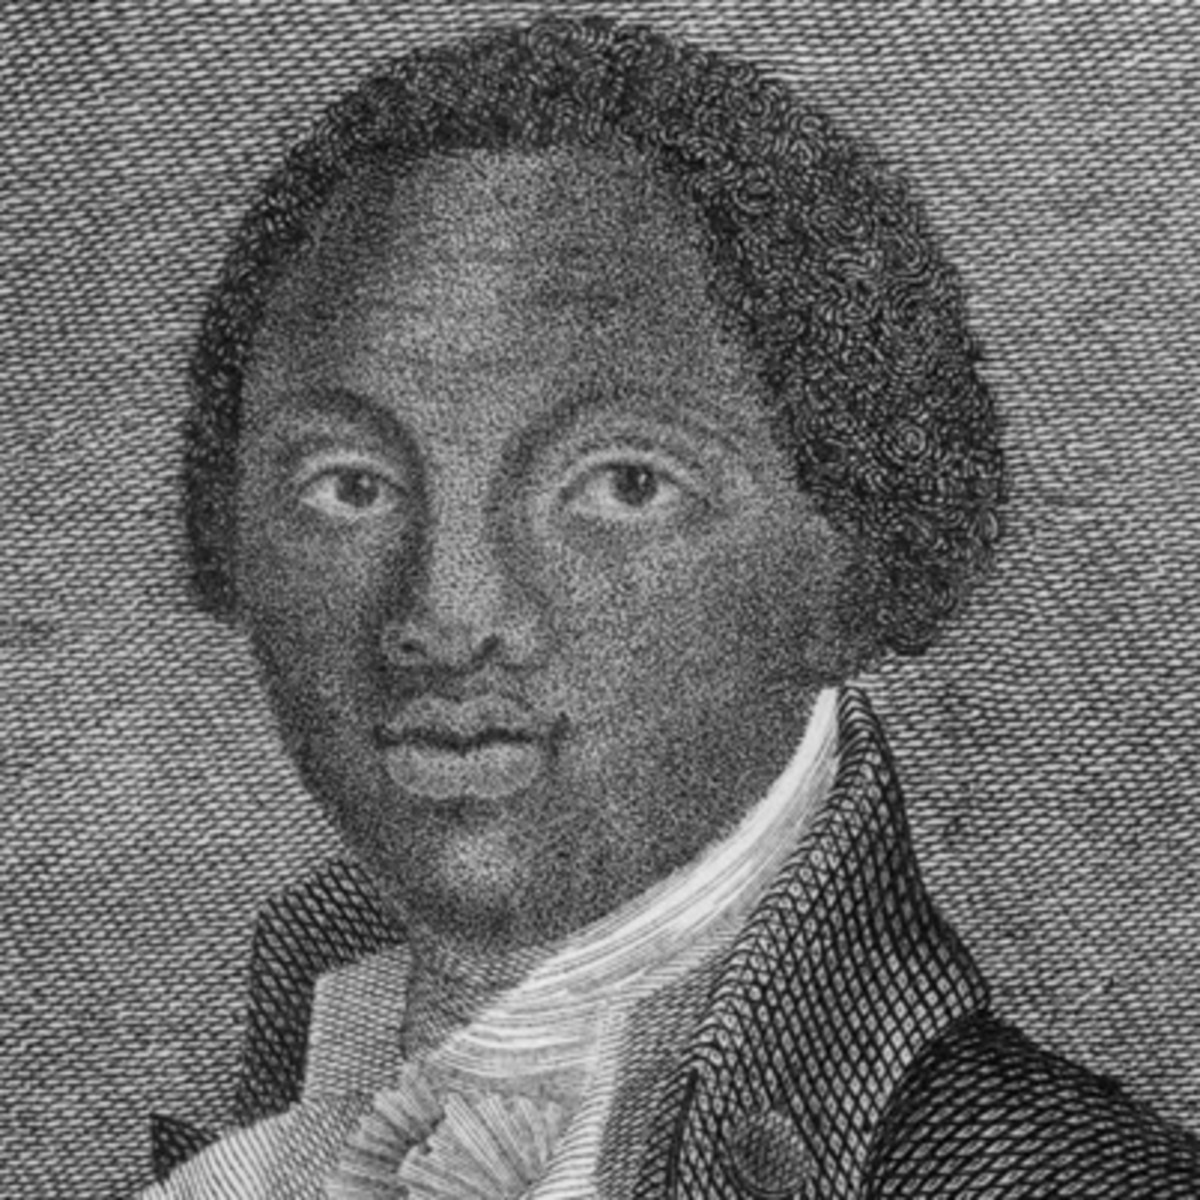 african history equianos travels He continued his travels the african at wikisource for the history of the narrative the publishing history of olaudah equiano's interesting narrative.